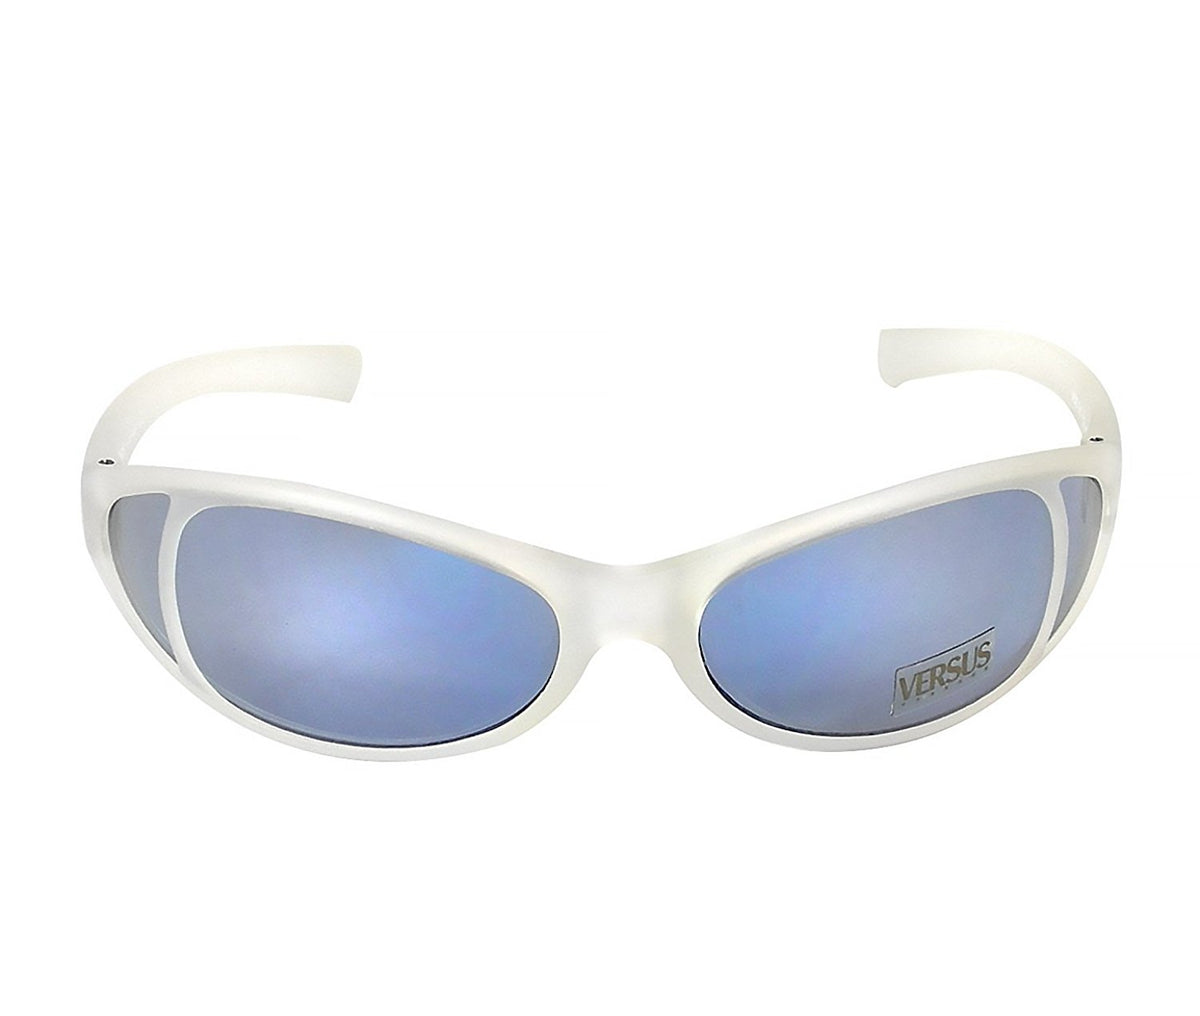 355c3753a9a8 Versus by Versace · Versus by Versace Sunglasses E87 Col. 657 268 Made in  Italy